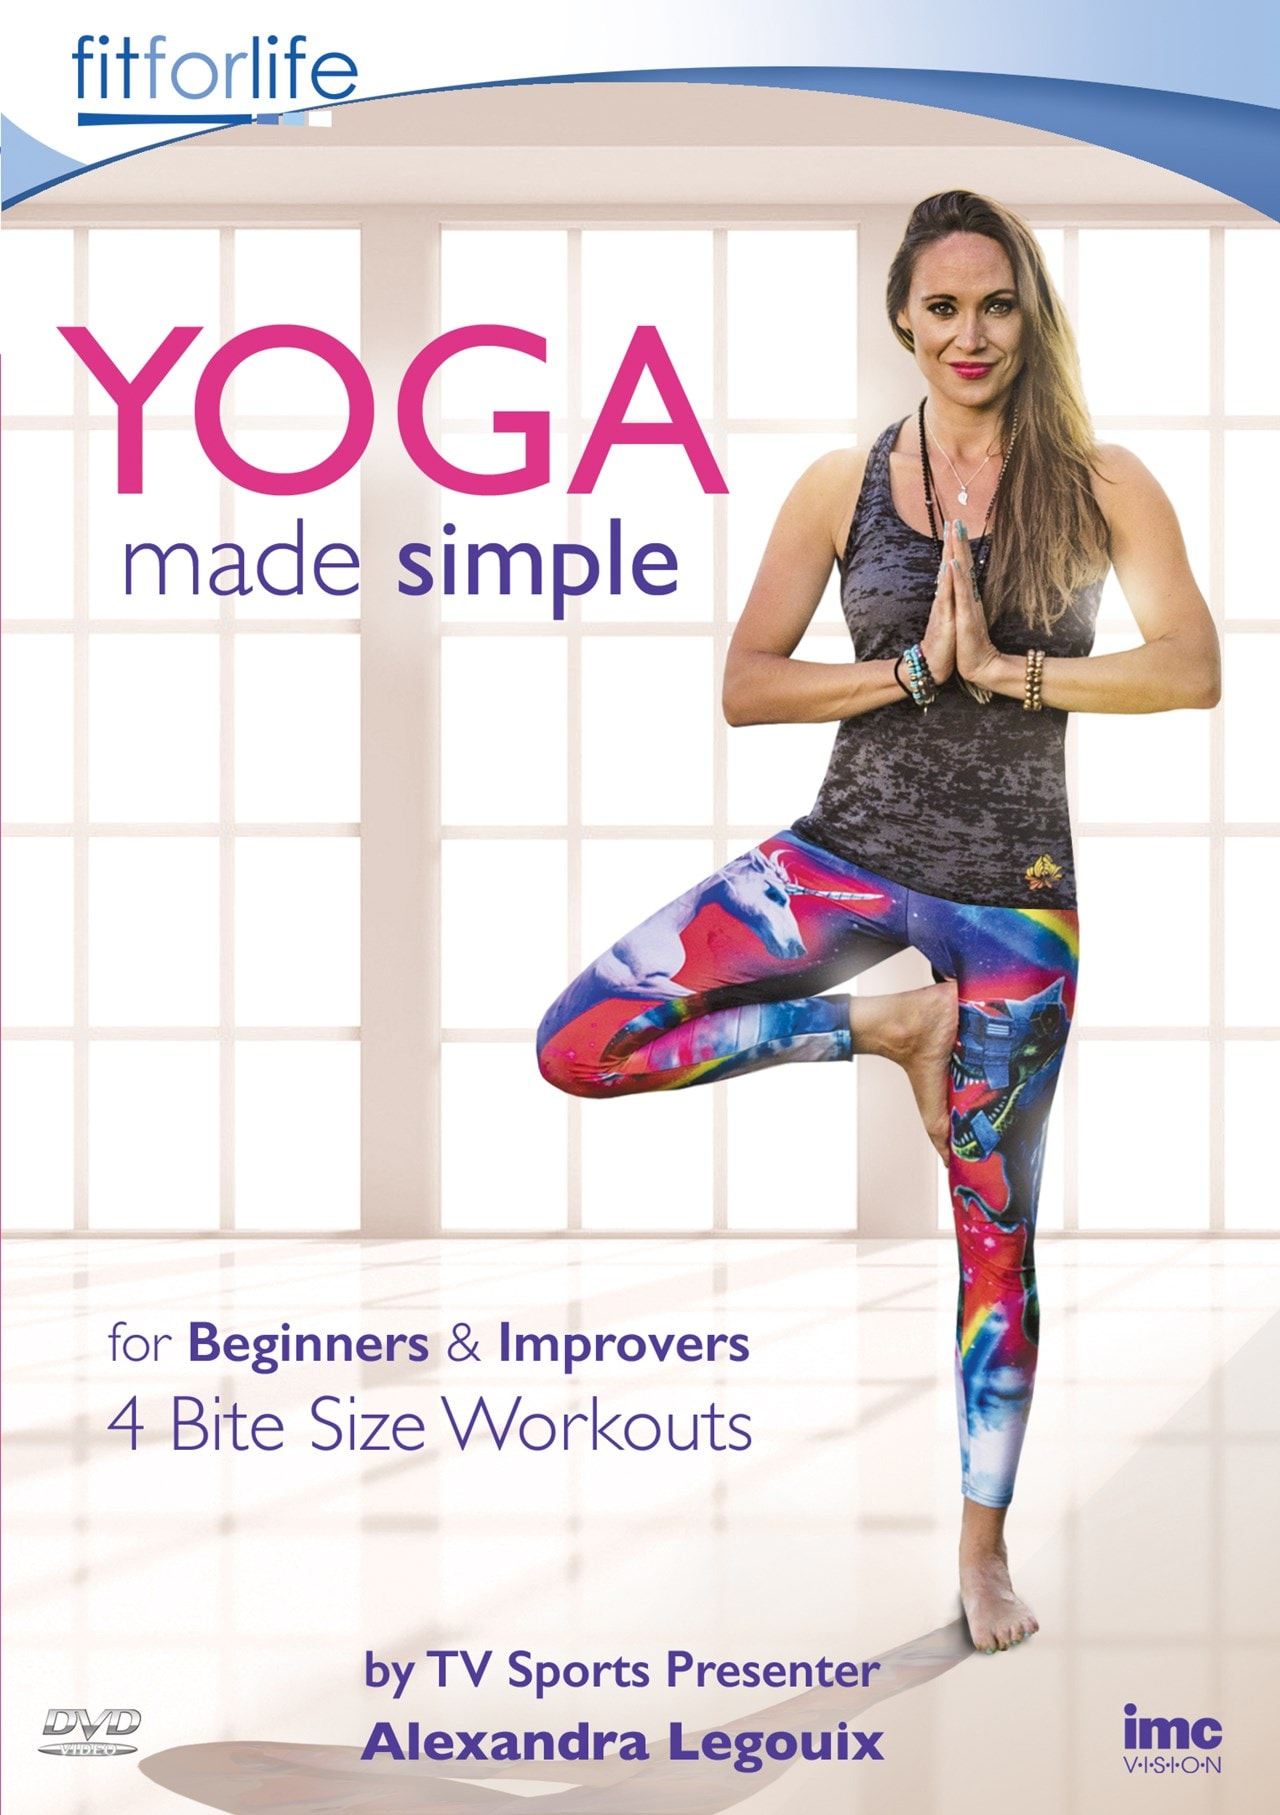 Yoga Made Simple for Beginners & Improvers: 4 Bite Size Workouts - 1